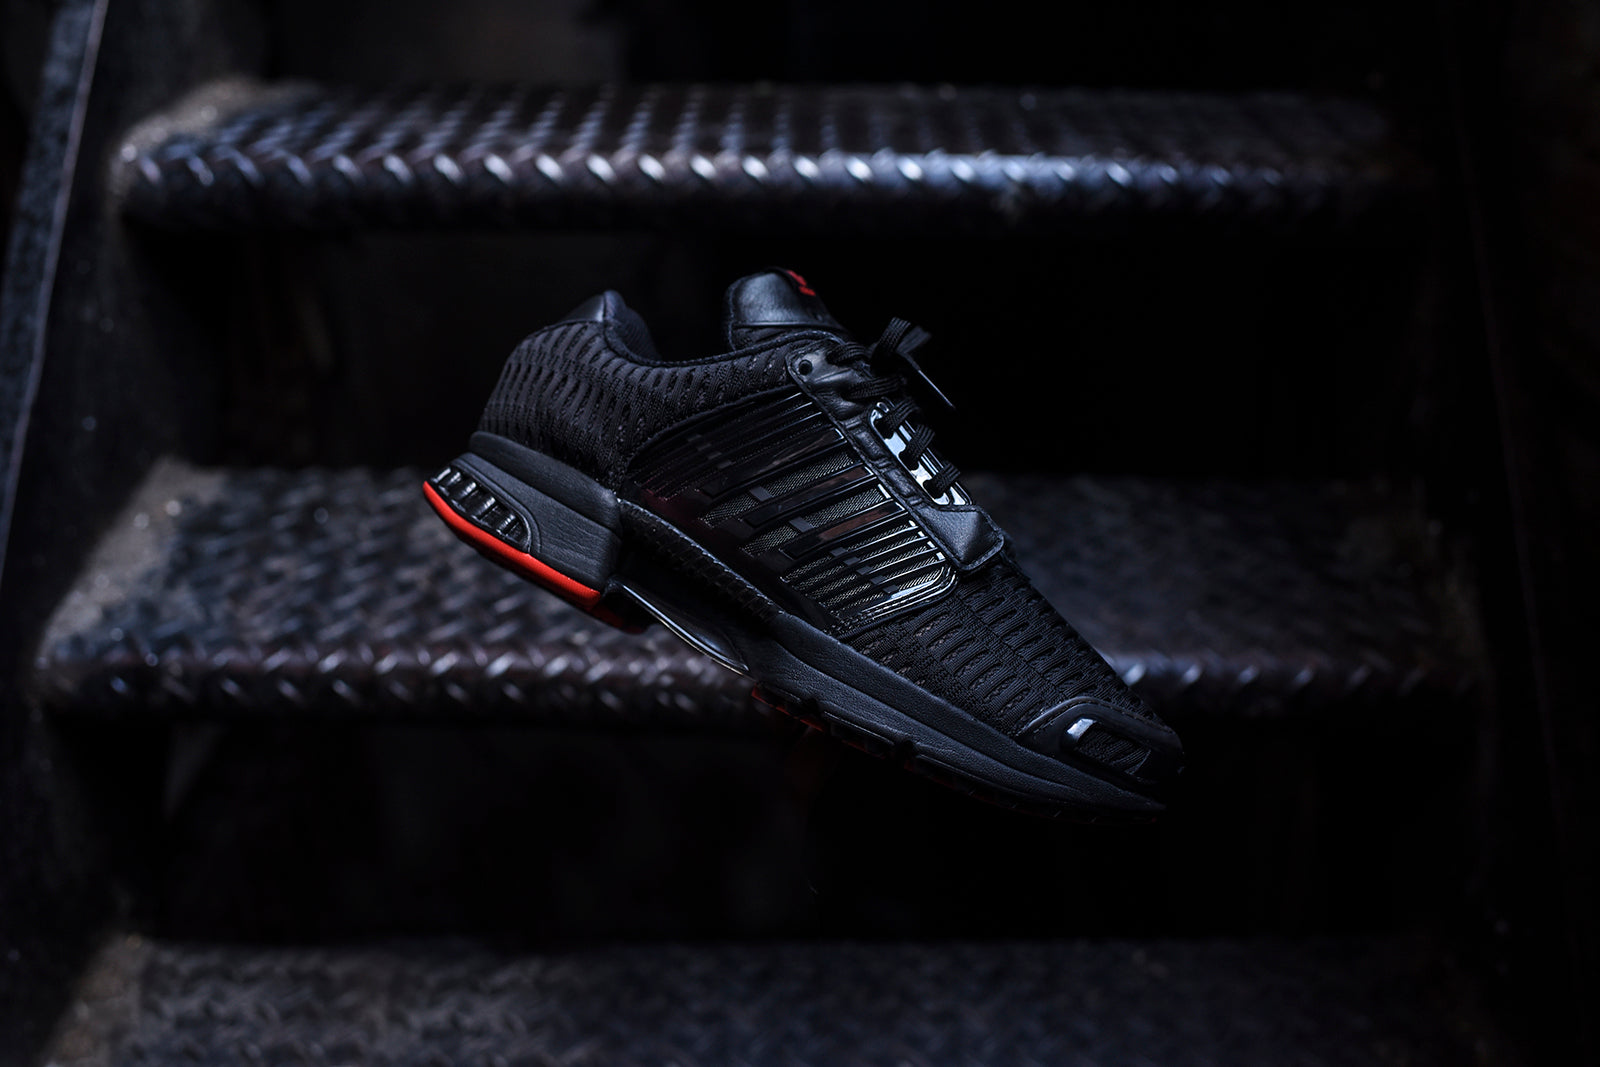 huge selection of bd7a9 5f7a1 adidas Consortium x Shoe Gallery Clima Cool 1 - Flight 305 ...